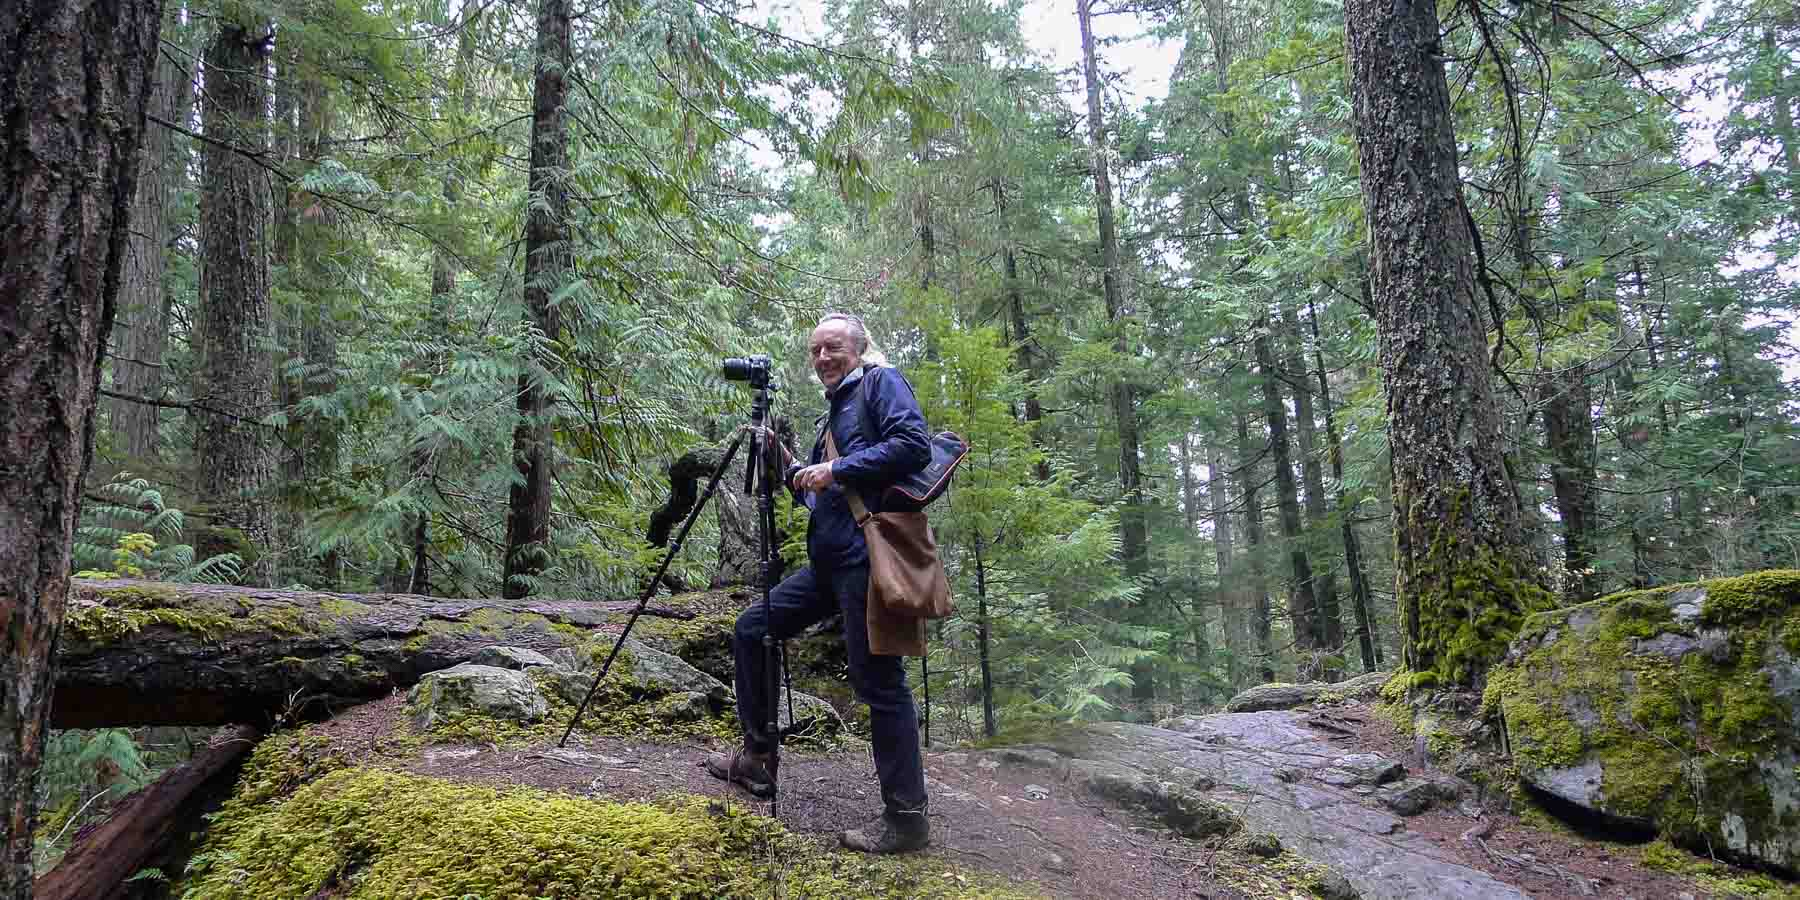 Photographing in the forest.